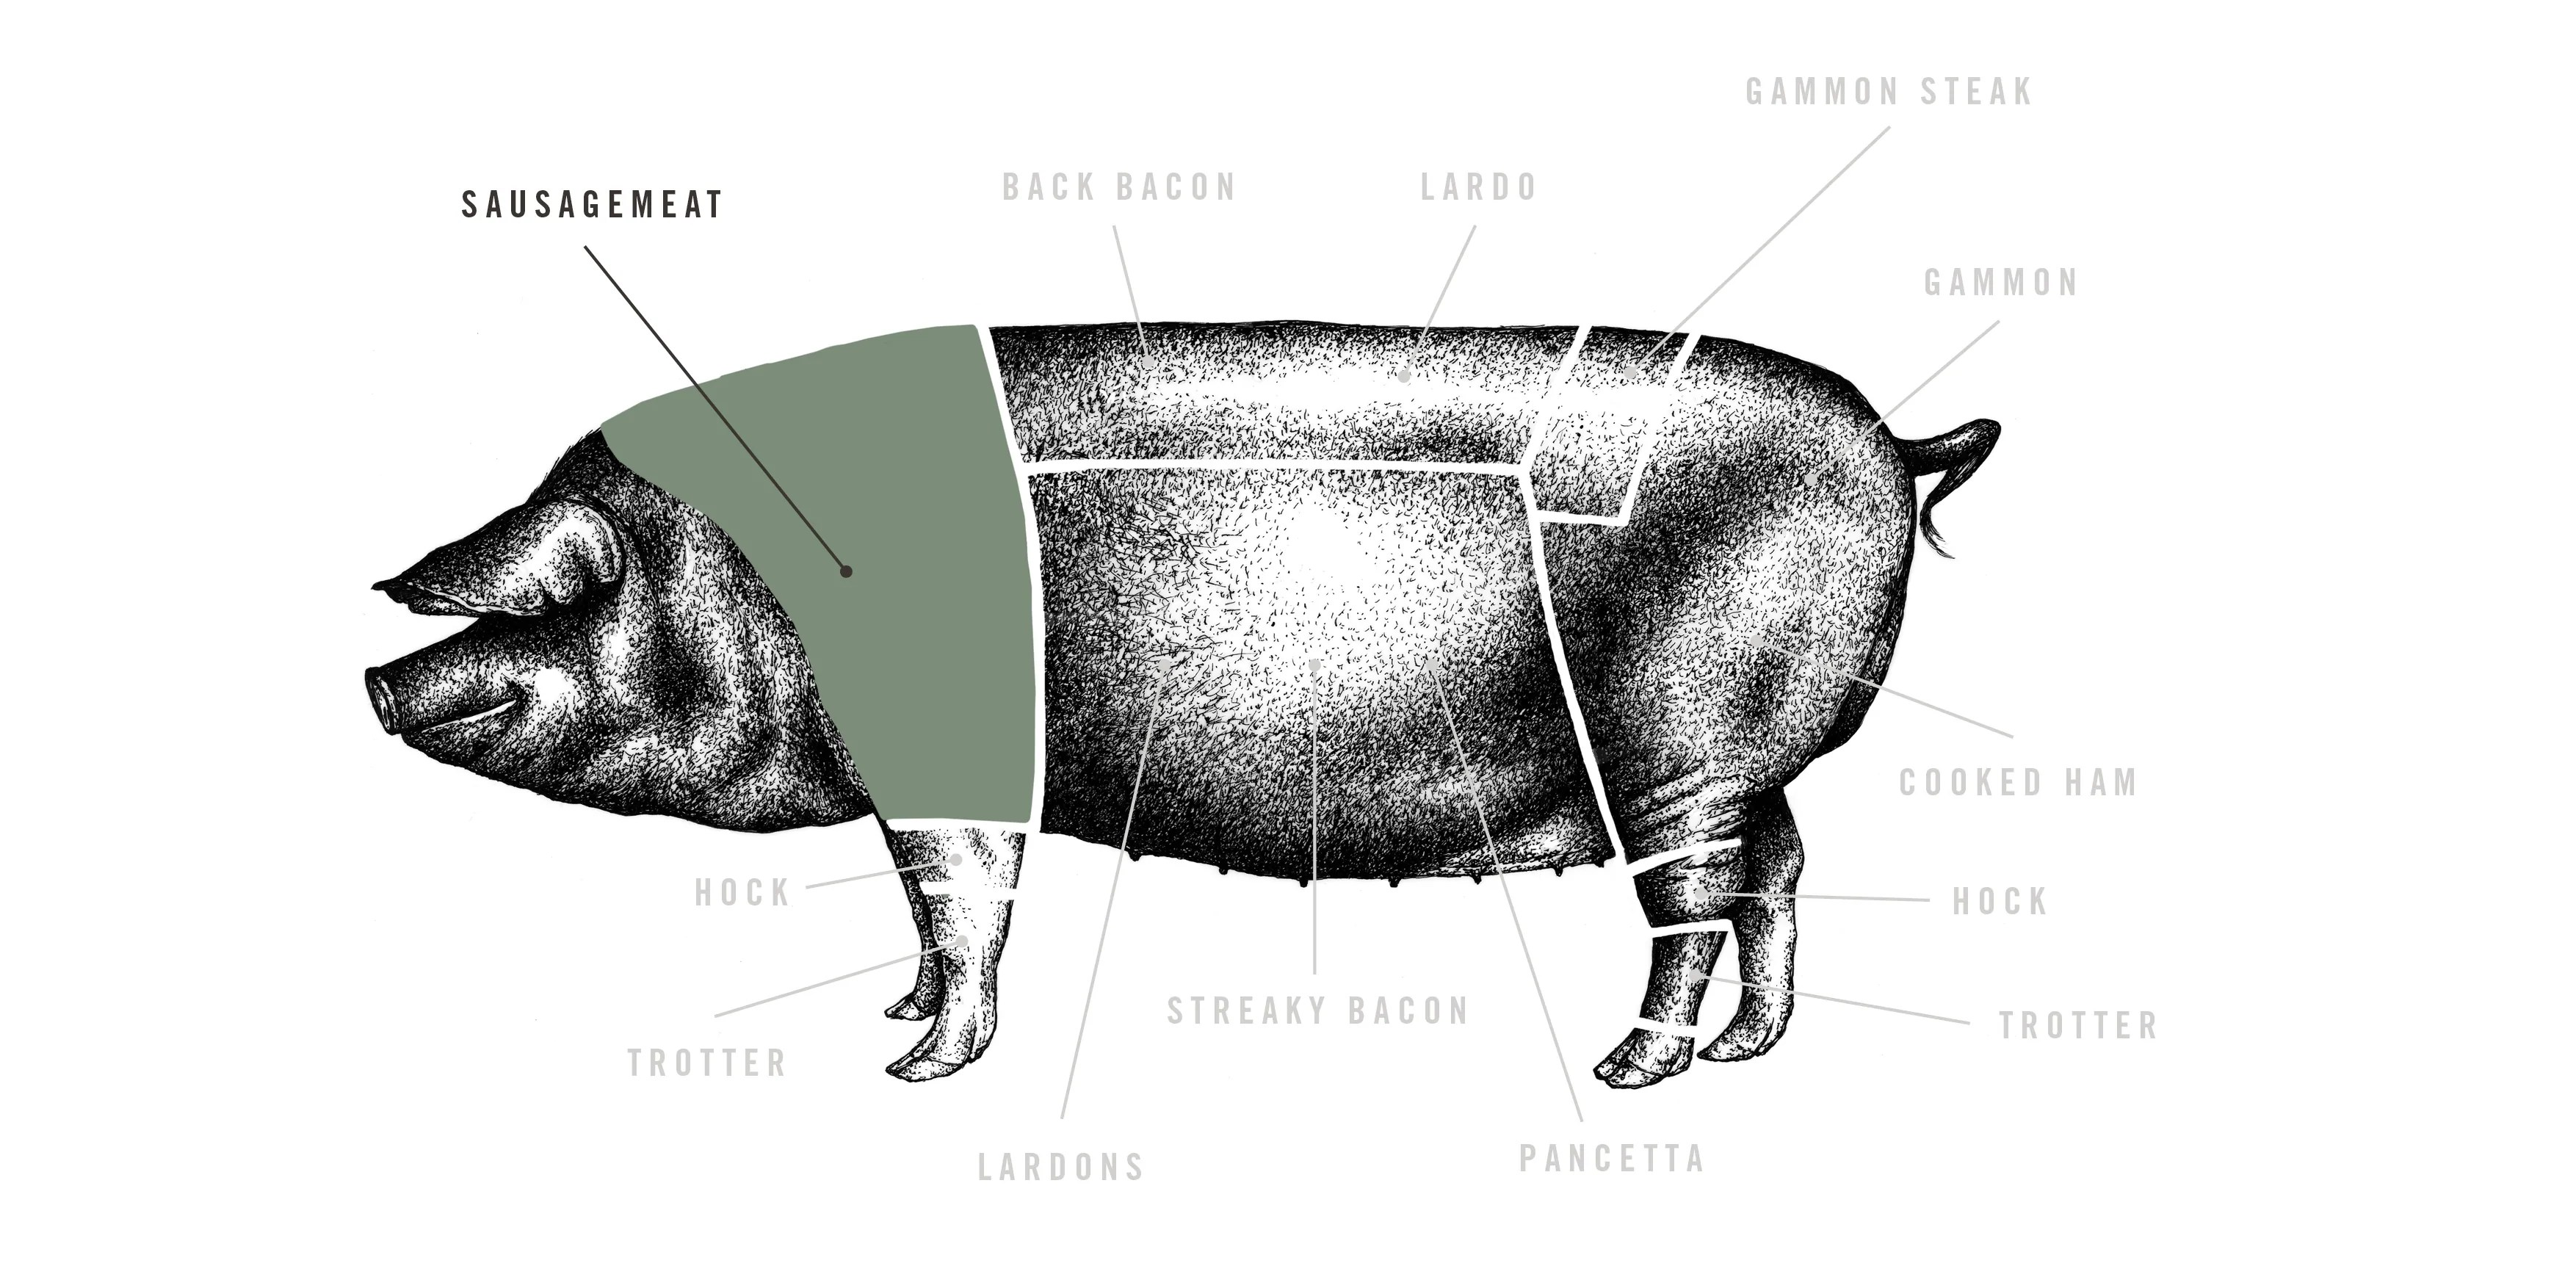 hight resolution of natural black pudding sausages meat cuts diagram